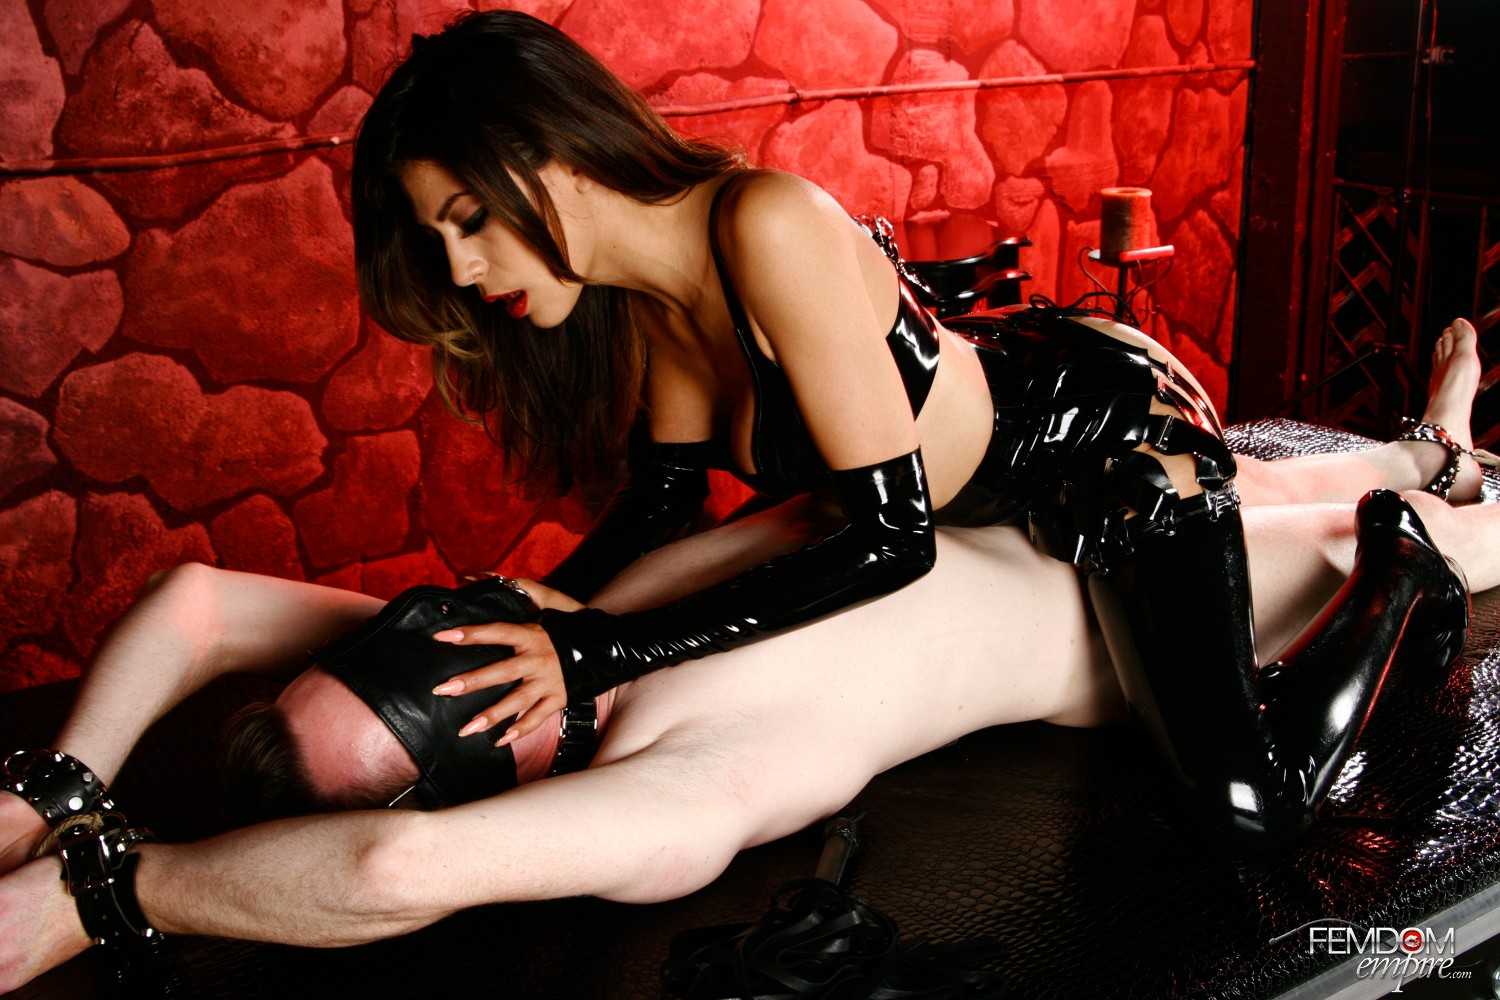 Mistress Heather Vahn uses her gimp for her sexual delight, first boinking him, then making him adore her labia.